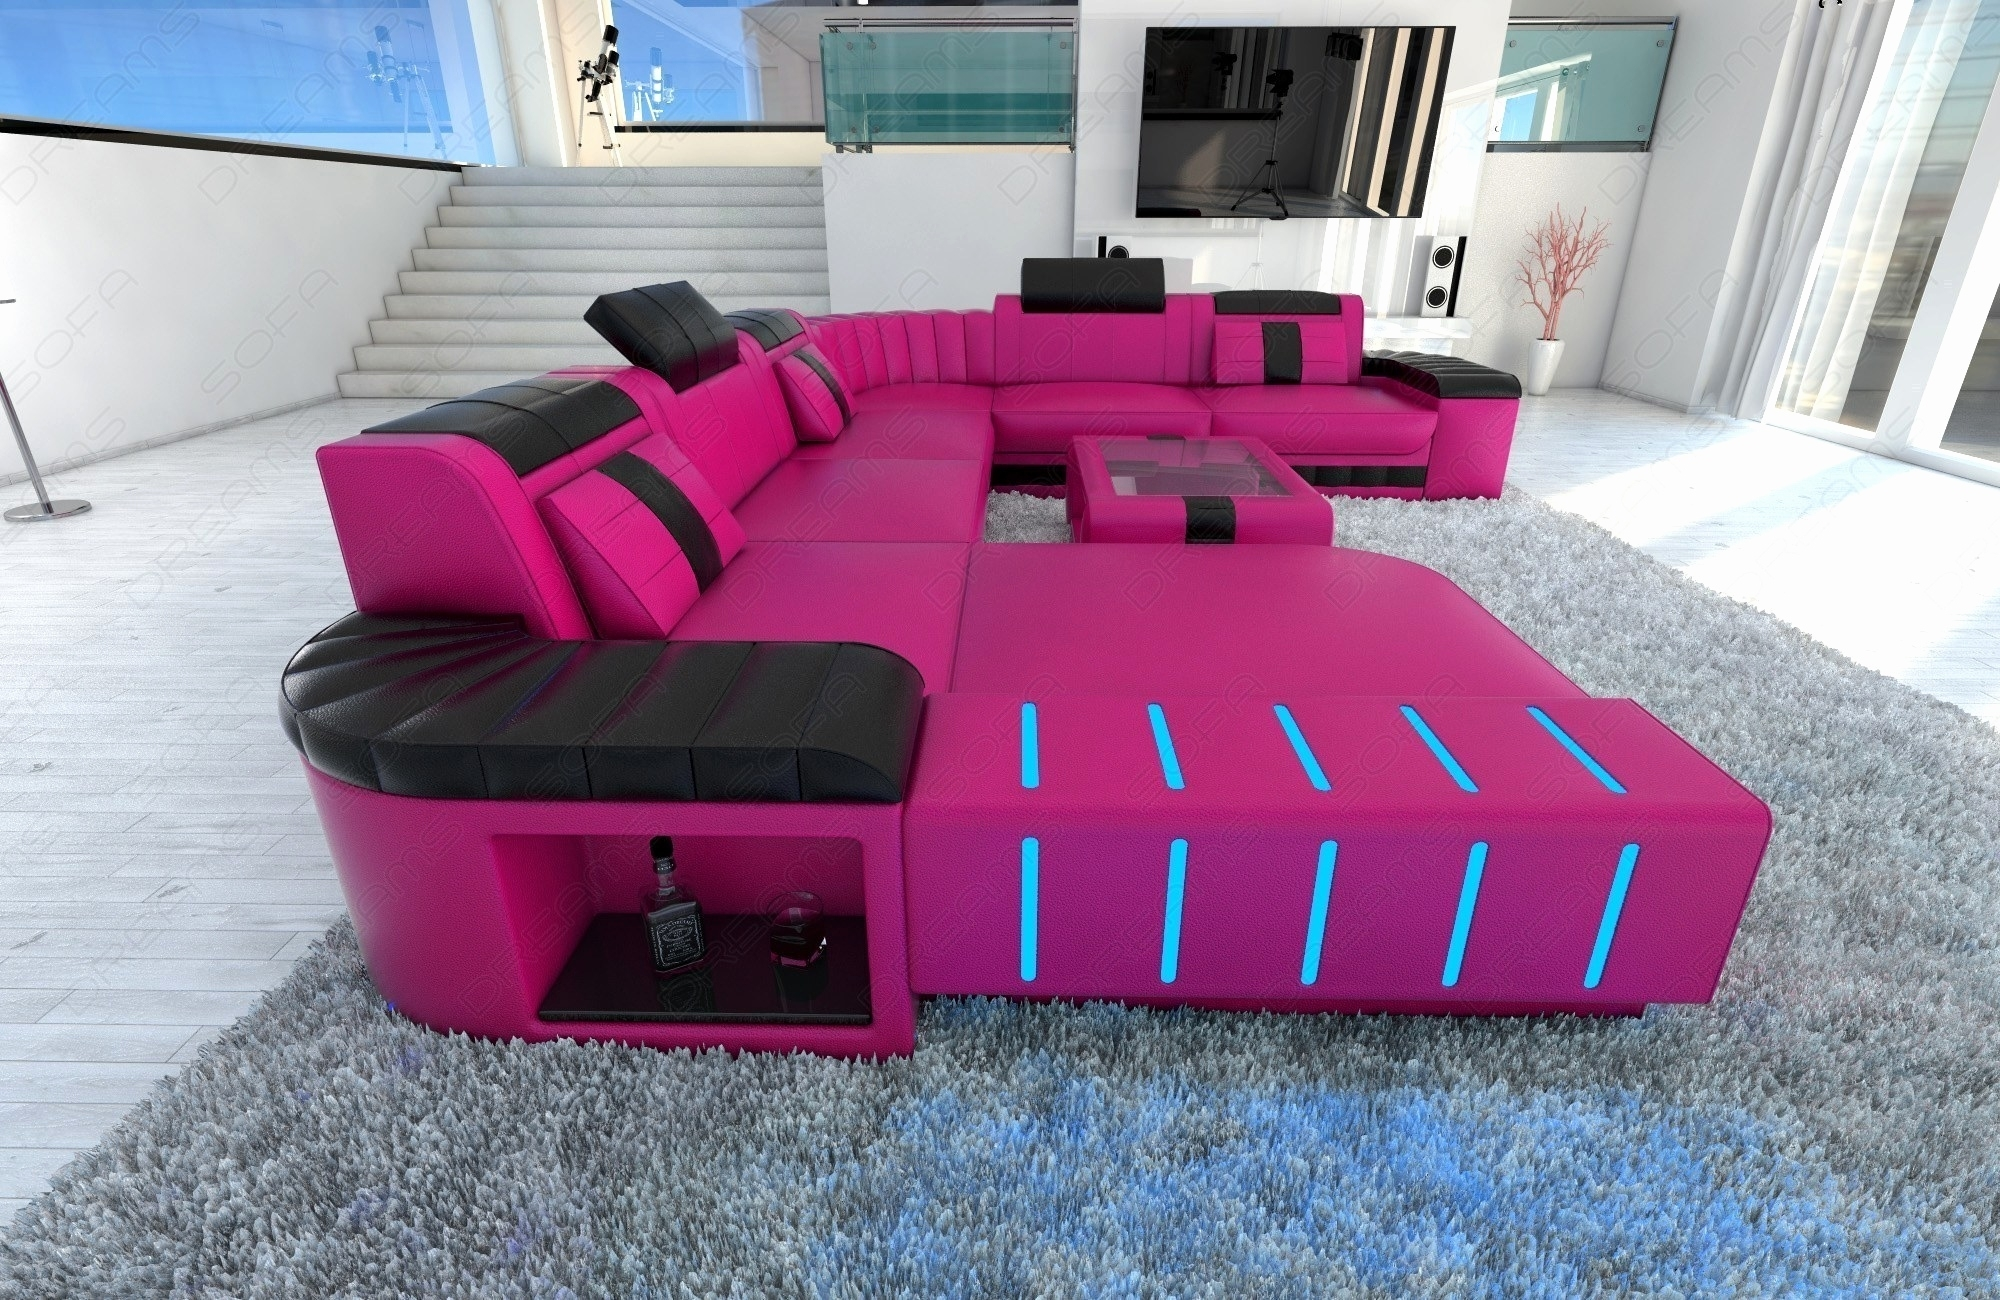 Awesome U Shaped Sectional Sofa 2018 – Couches Ideas Inside Sectional Sofas At Ebay (View 1 of 10)